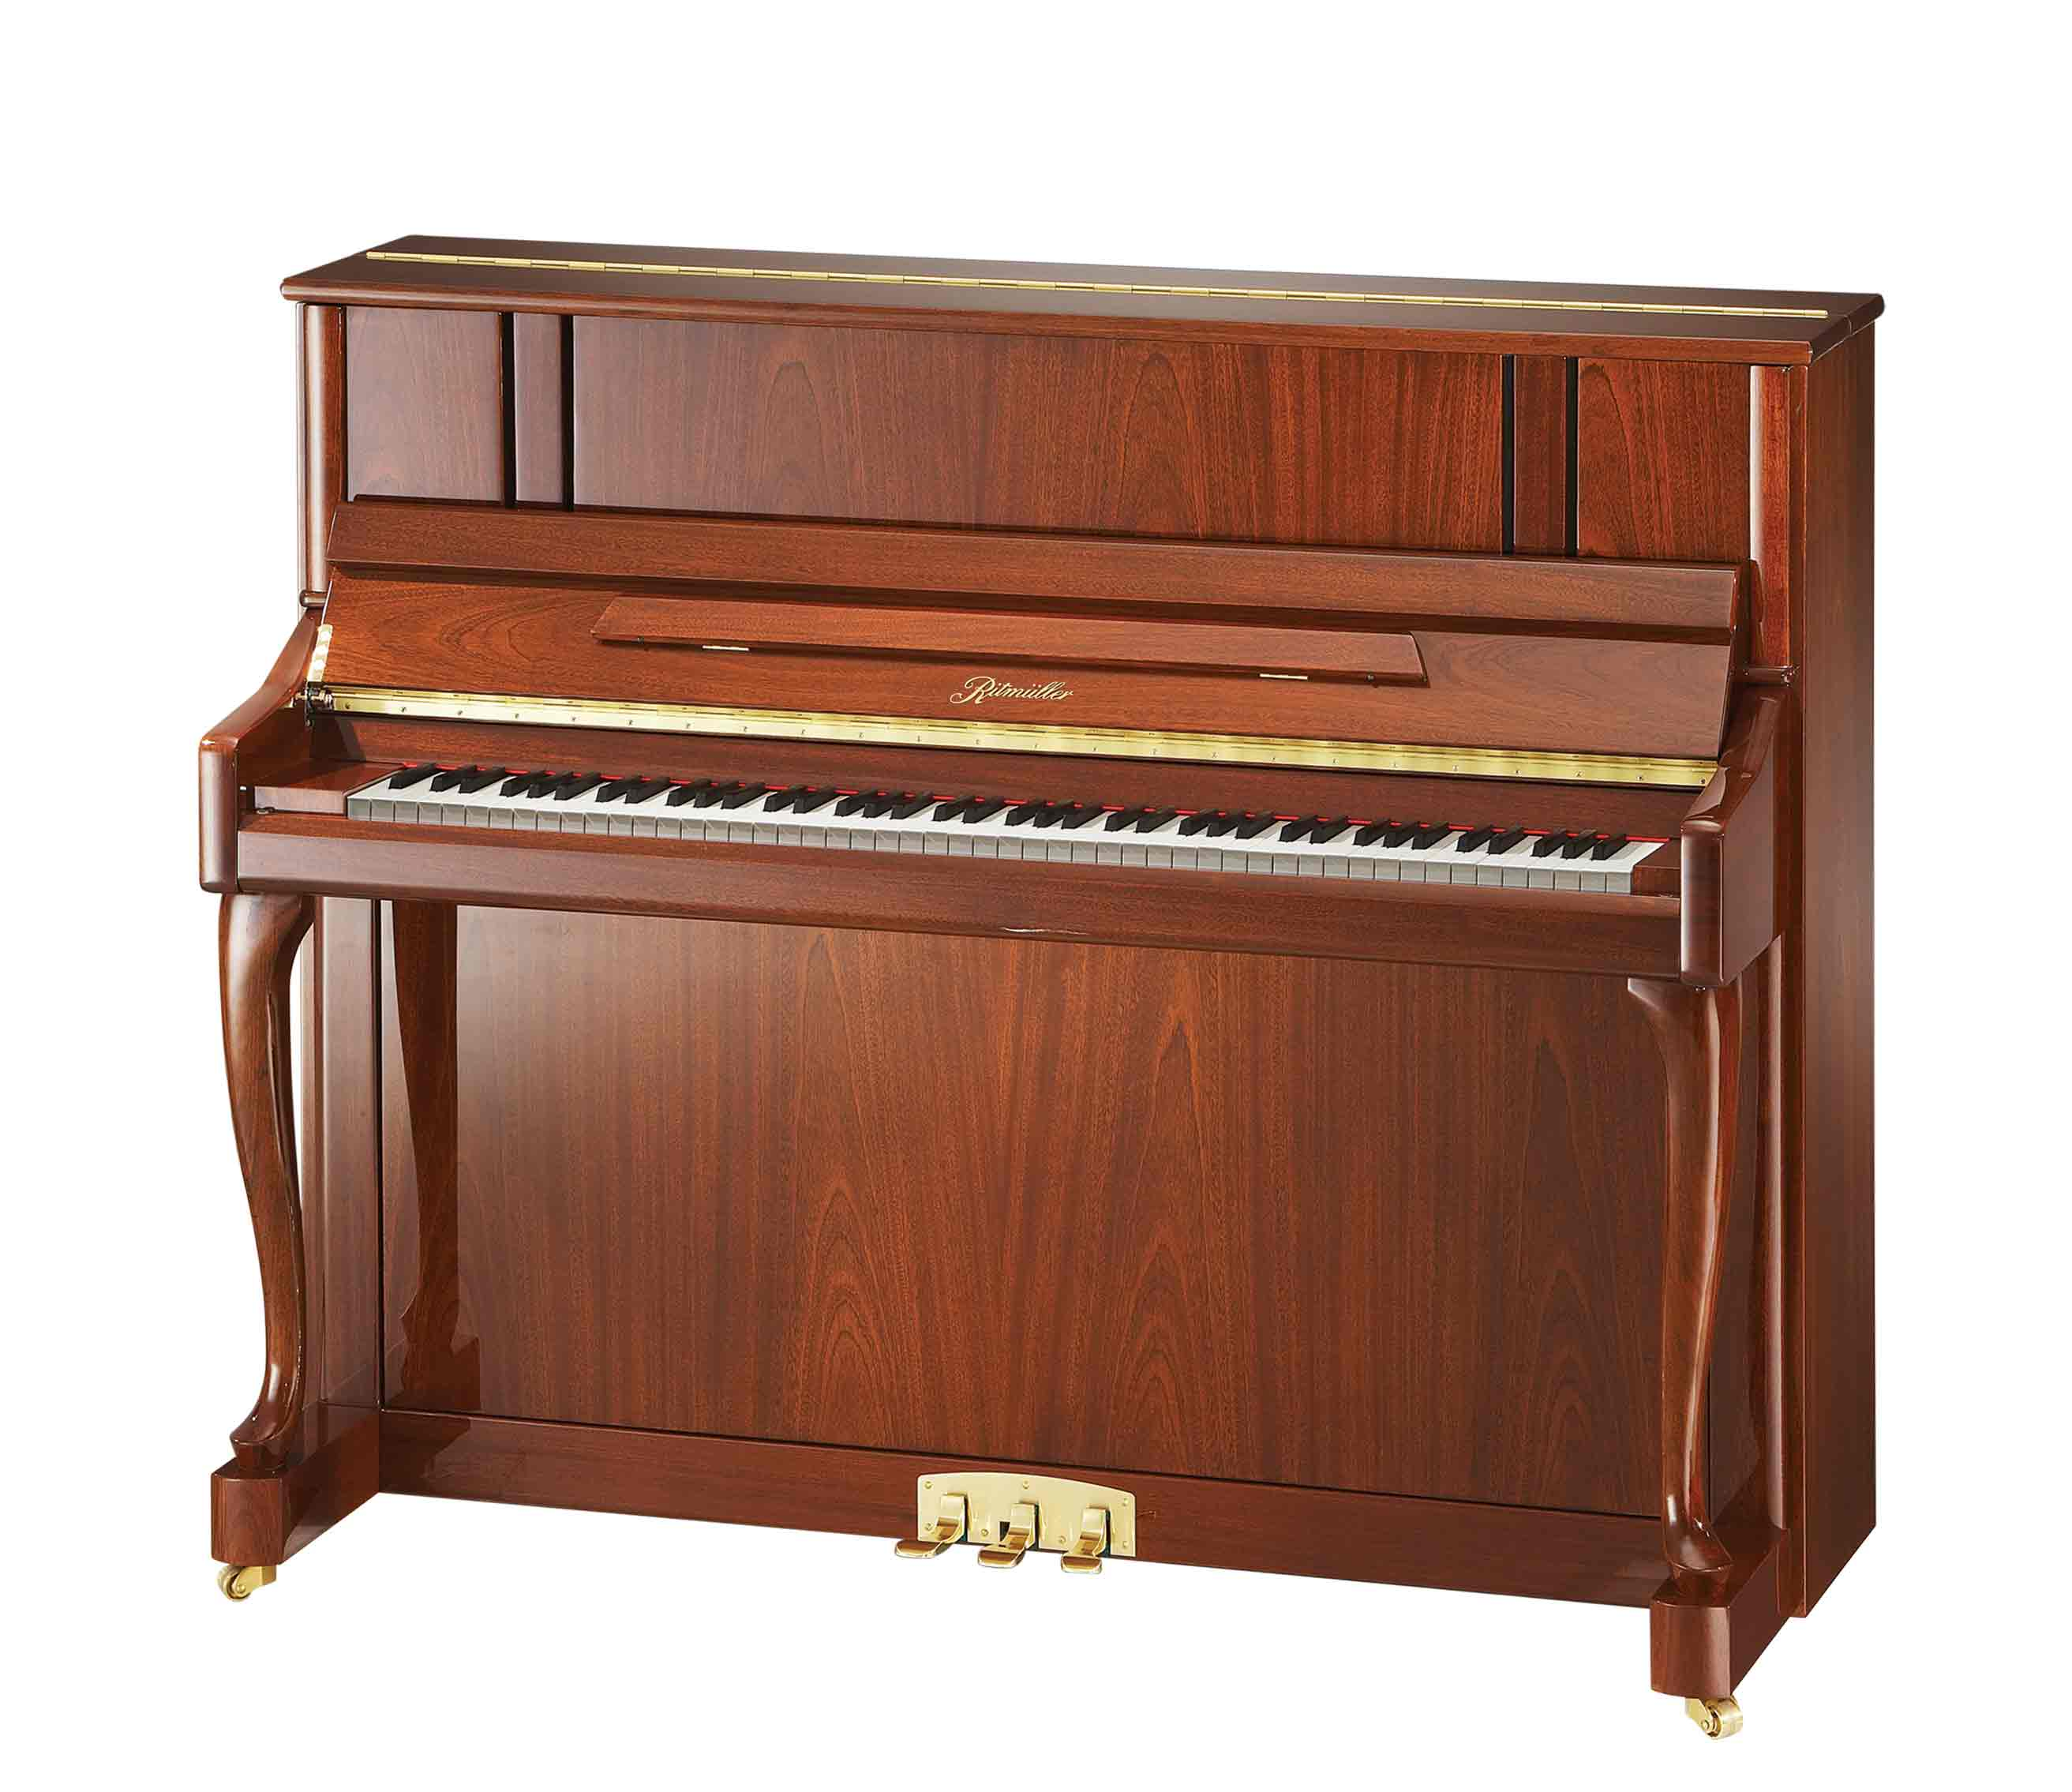 Ritmüller UH121R Cabriole Leg studio upright piano in Sapele Mahogany Polish finish